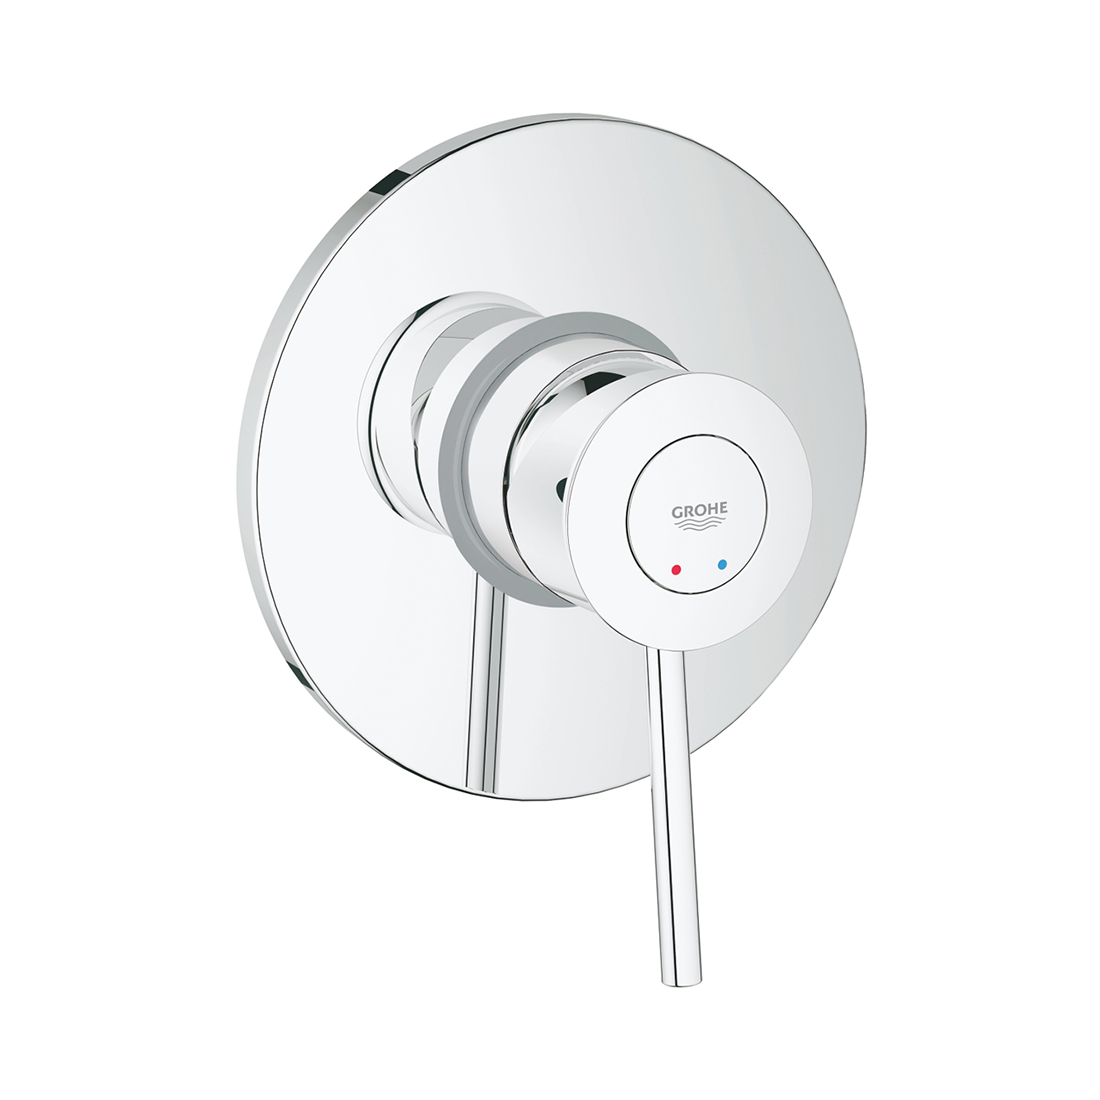 Grohe 29048000 Bauclassic Single-Lever Shower Mixer